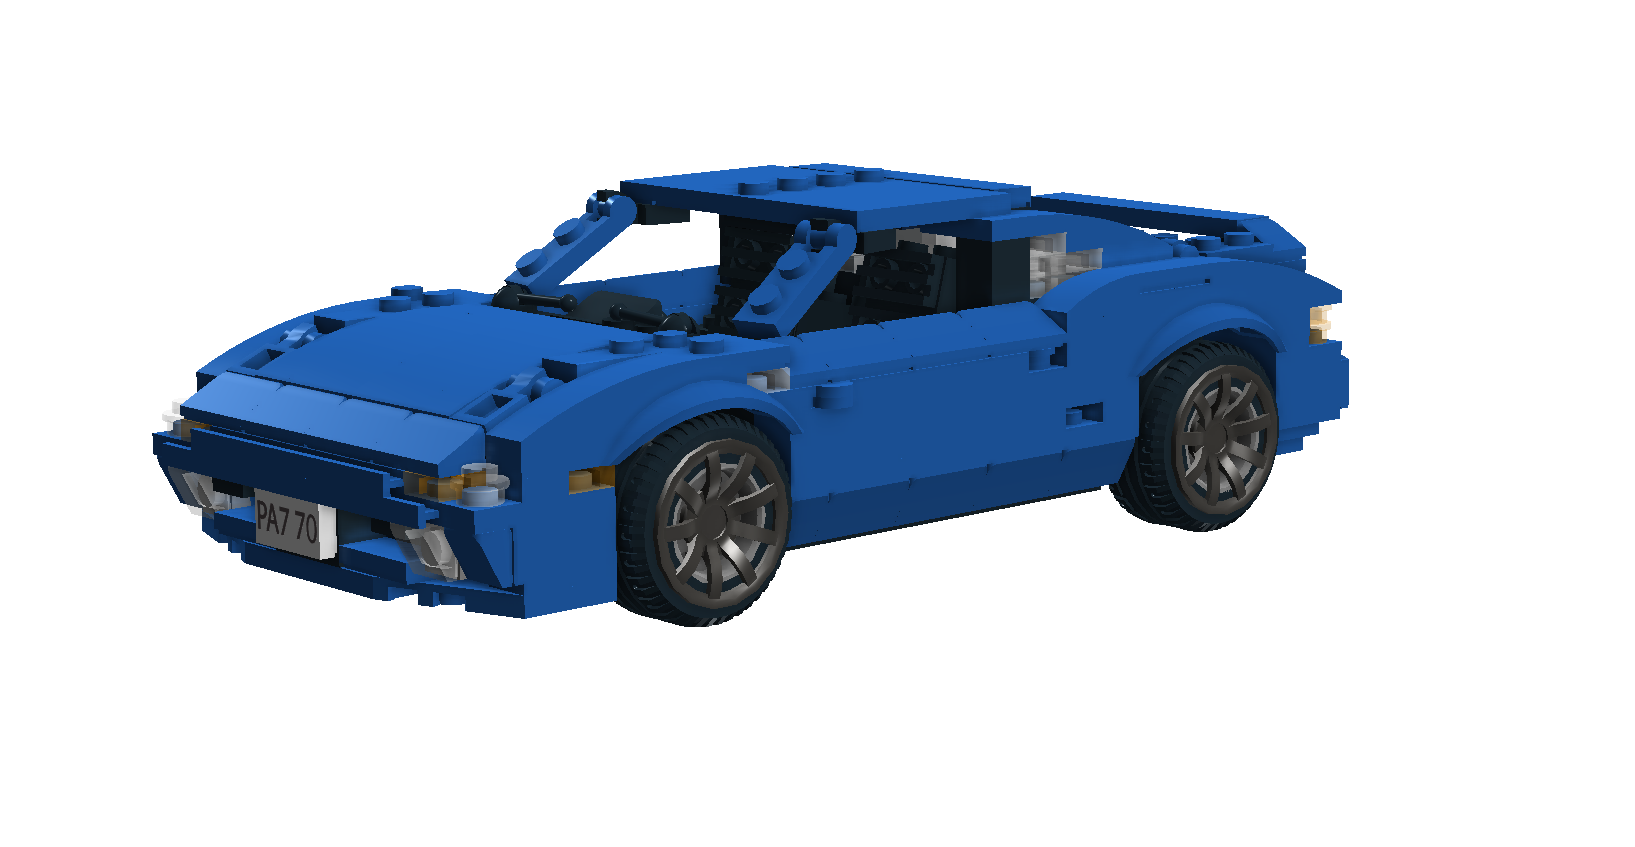 toyota_mr2_mk2_coupe.png